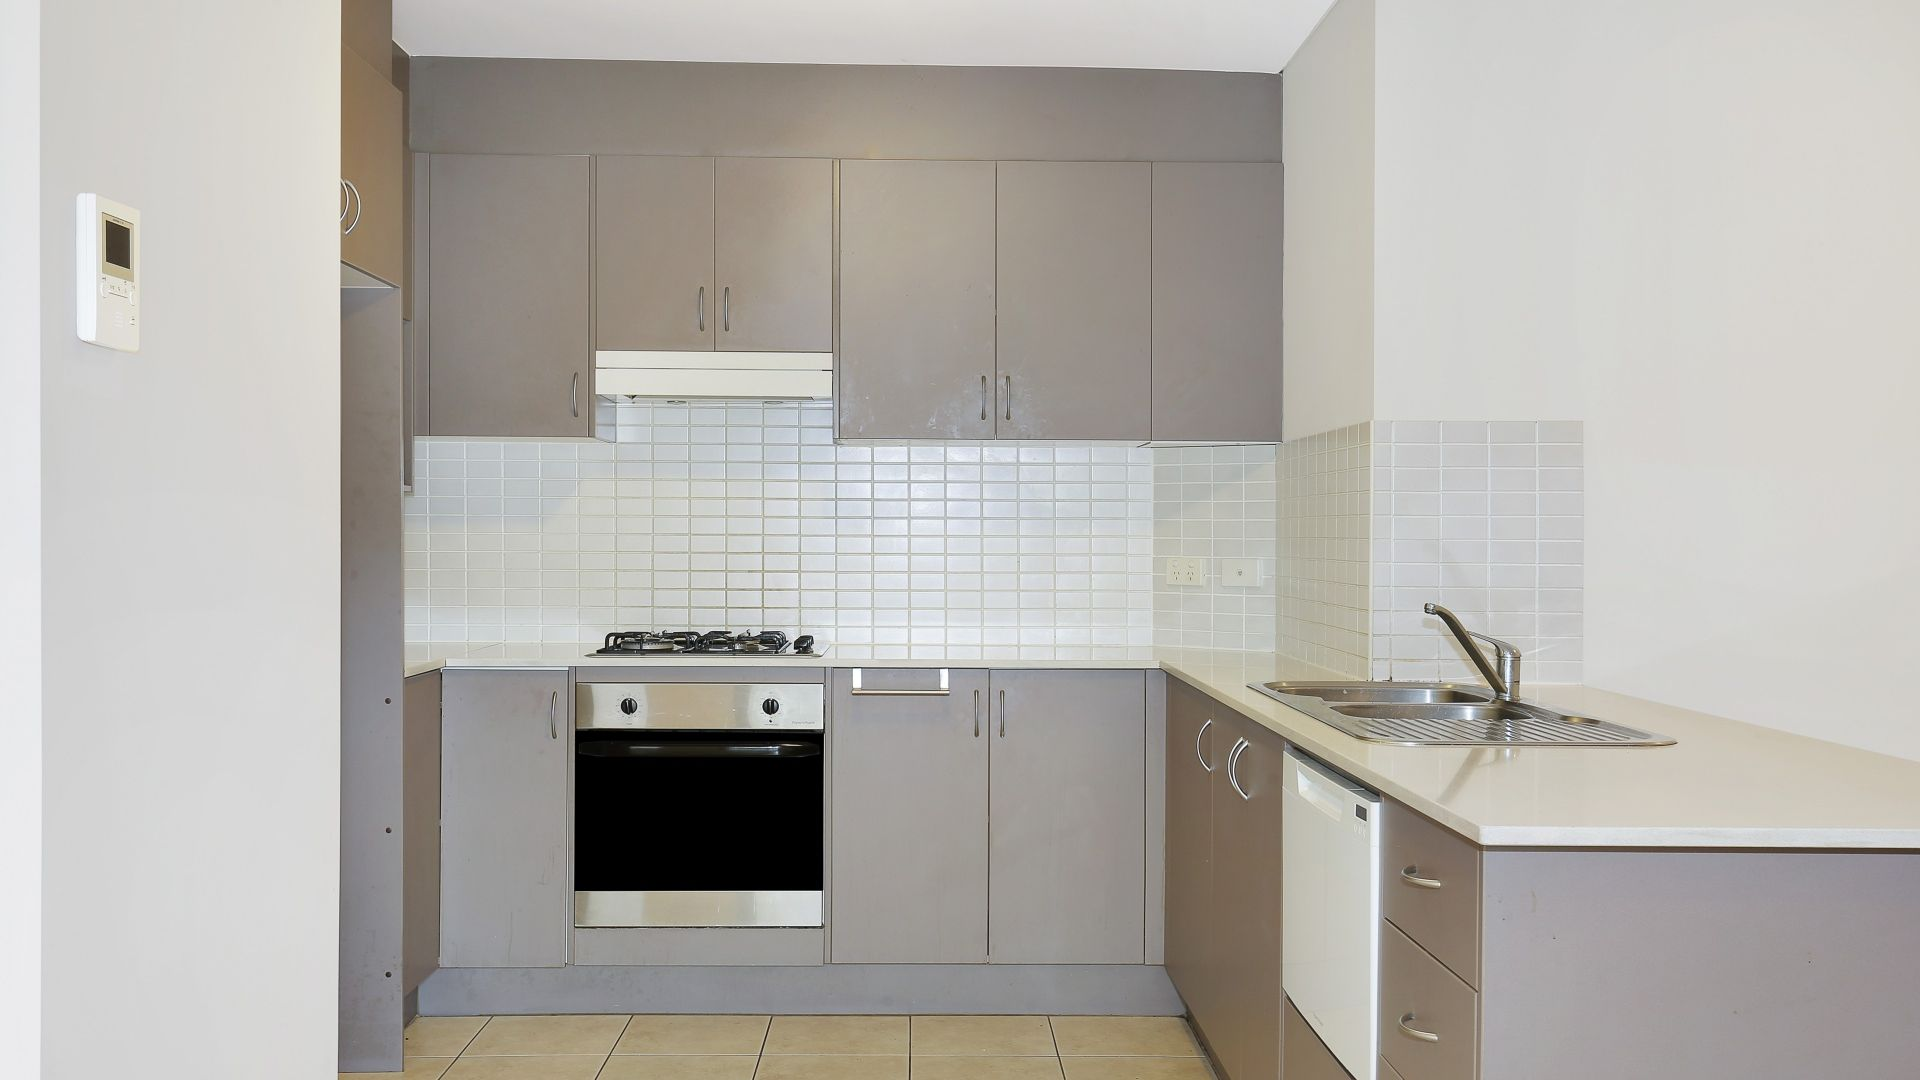 3/1 Governors Lane, Wollongong NSW 2500, Image 1